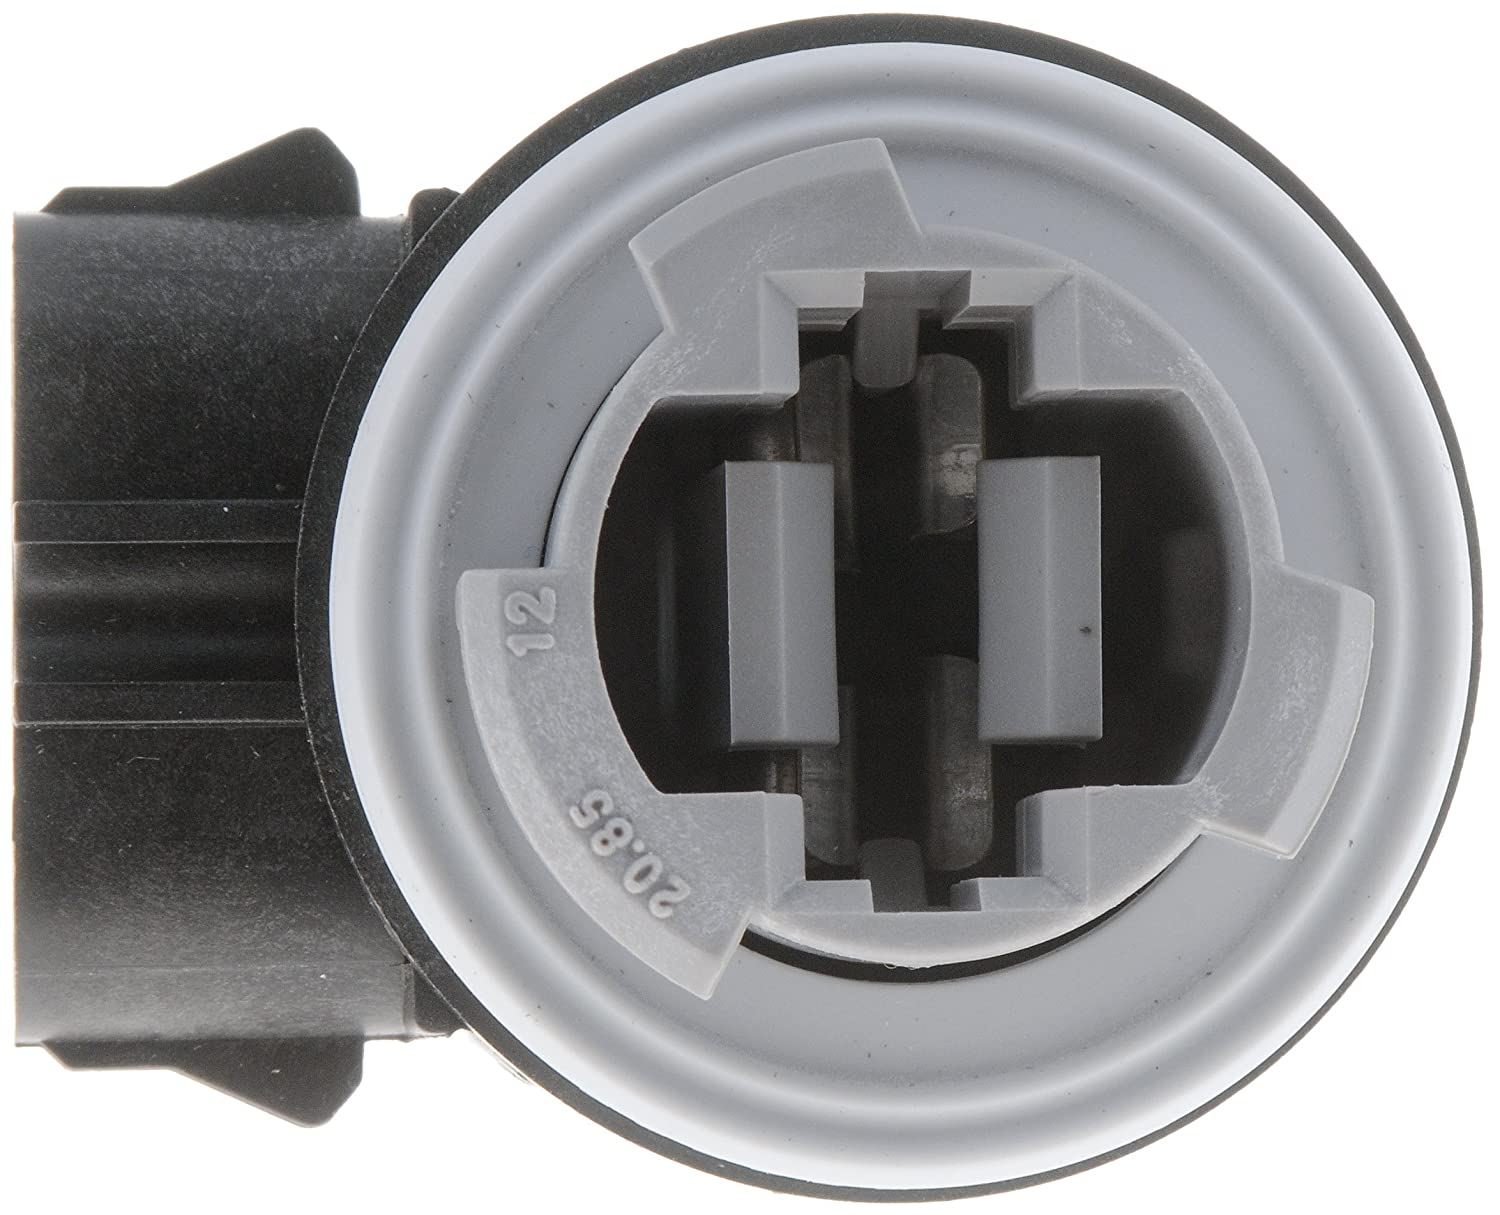 Dorman 84765 Turn Signal Lamp Socket Automotive 1990 Jeep Cherokee Laredo Signals Wiring